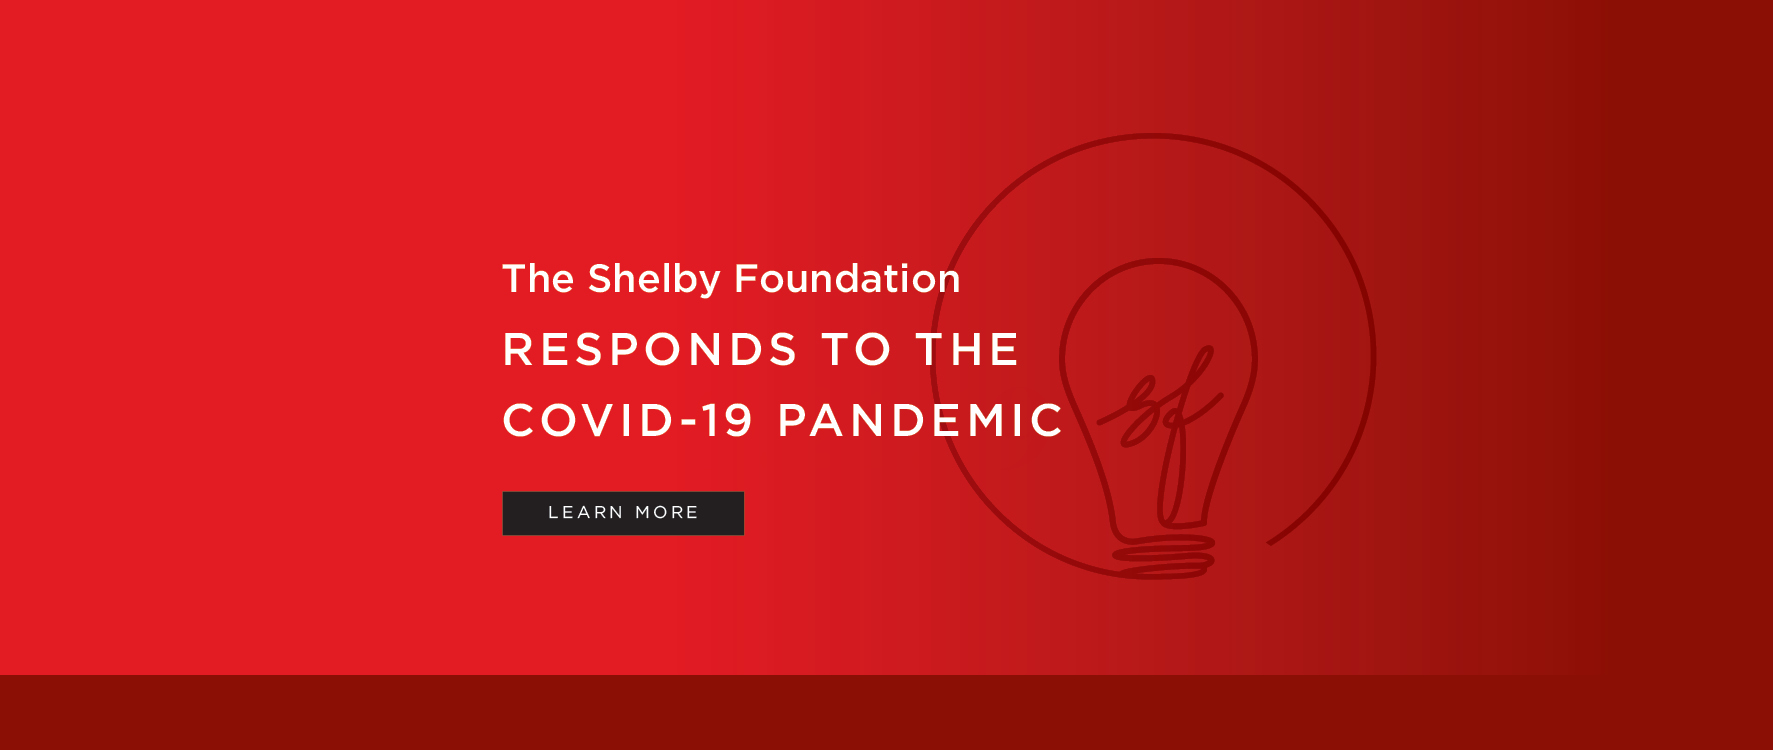 The Shelby Foundation Crisis Response